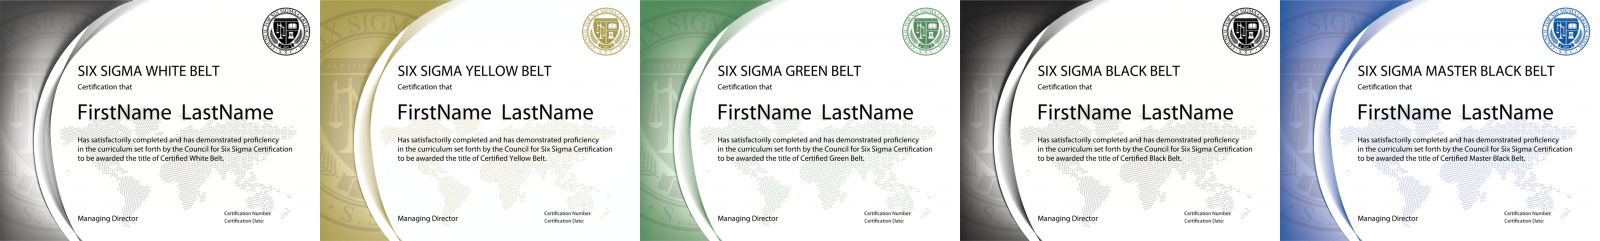 Six Sigma Belts Six Sigma Levels Six Sigma Certification Levels